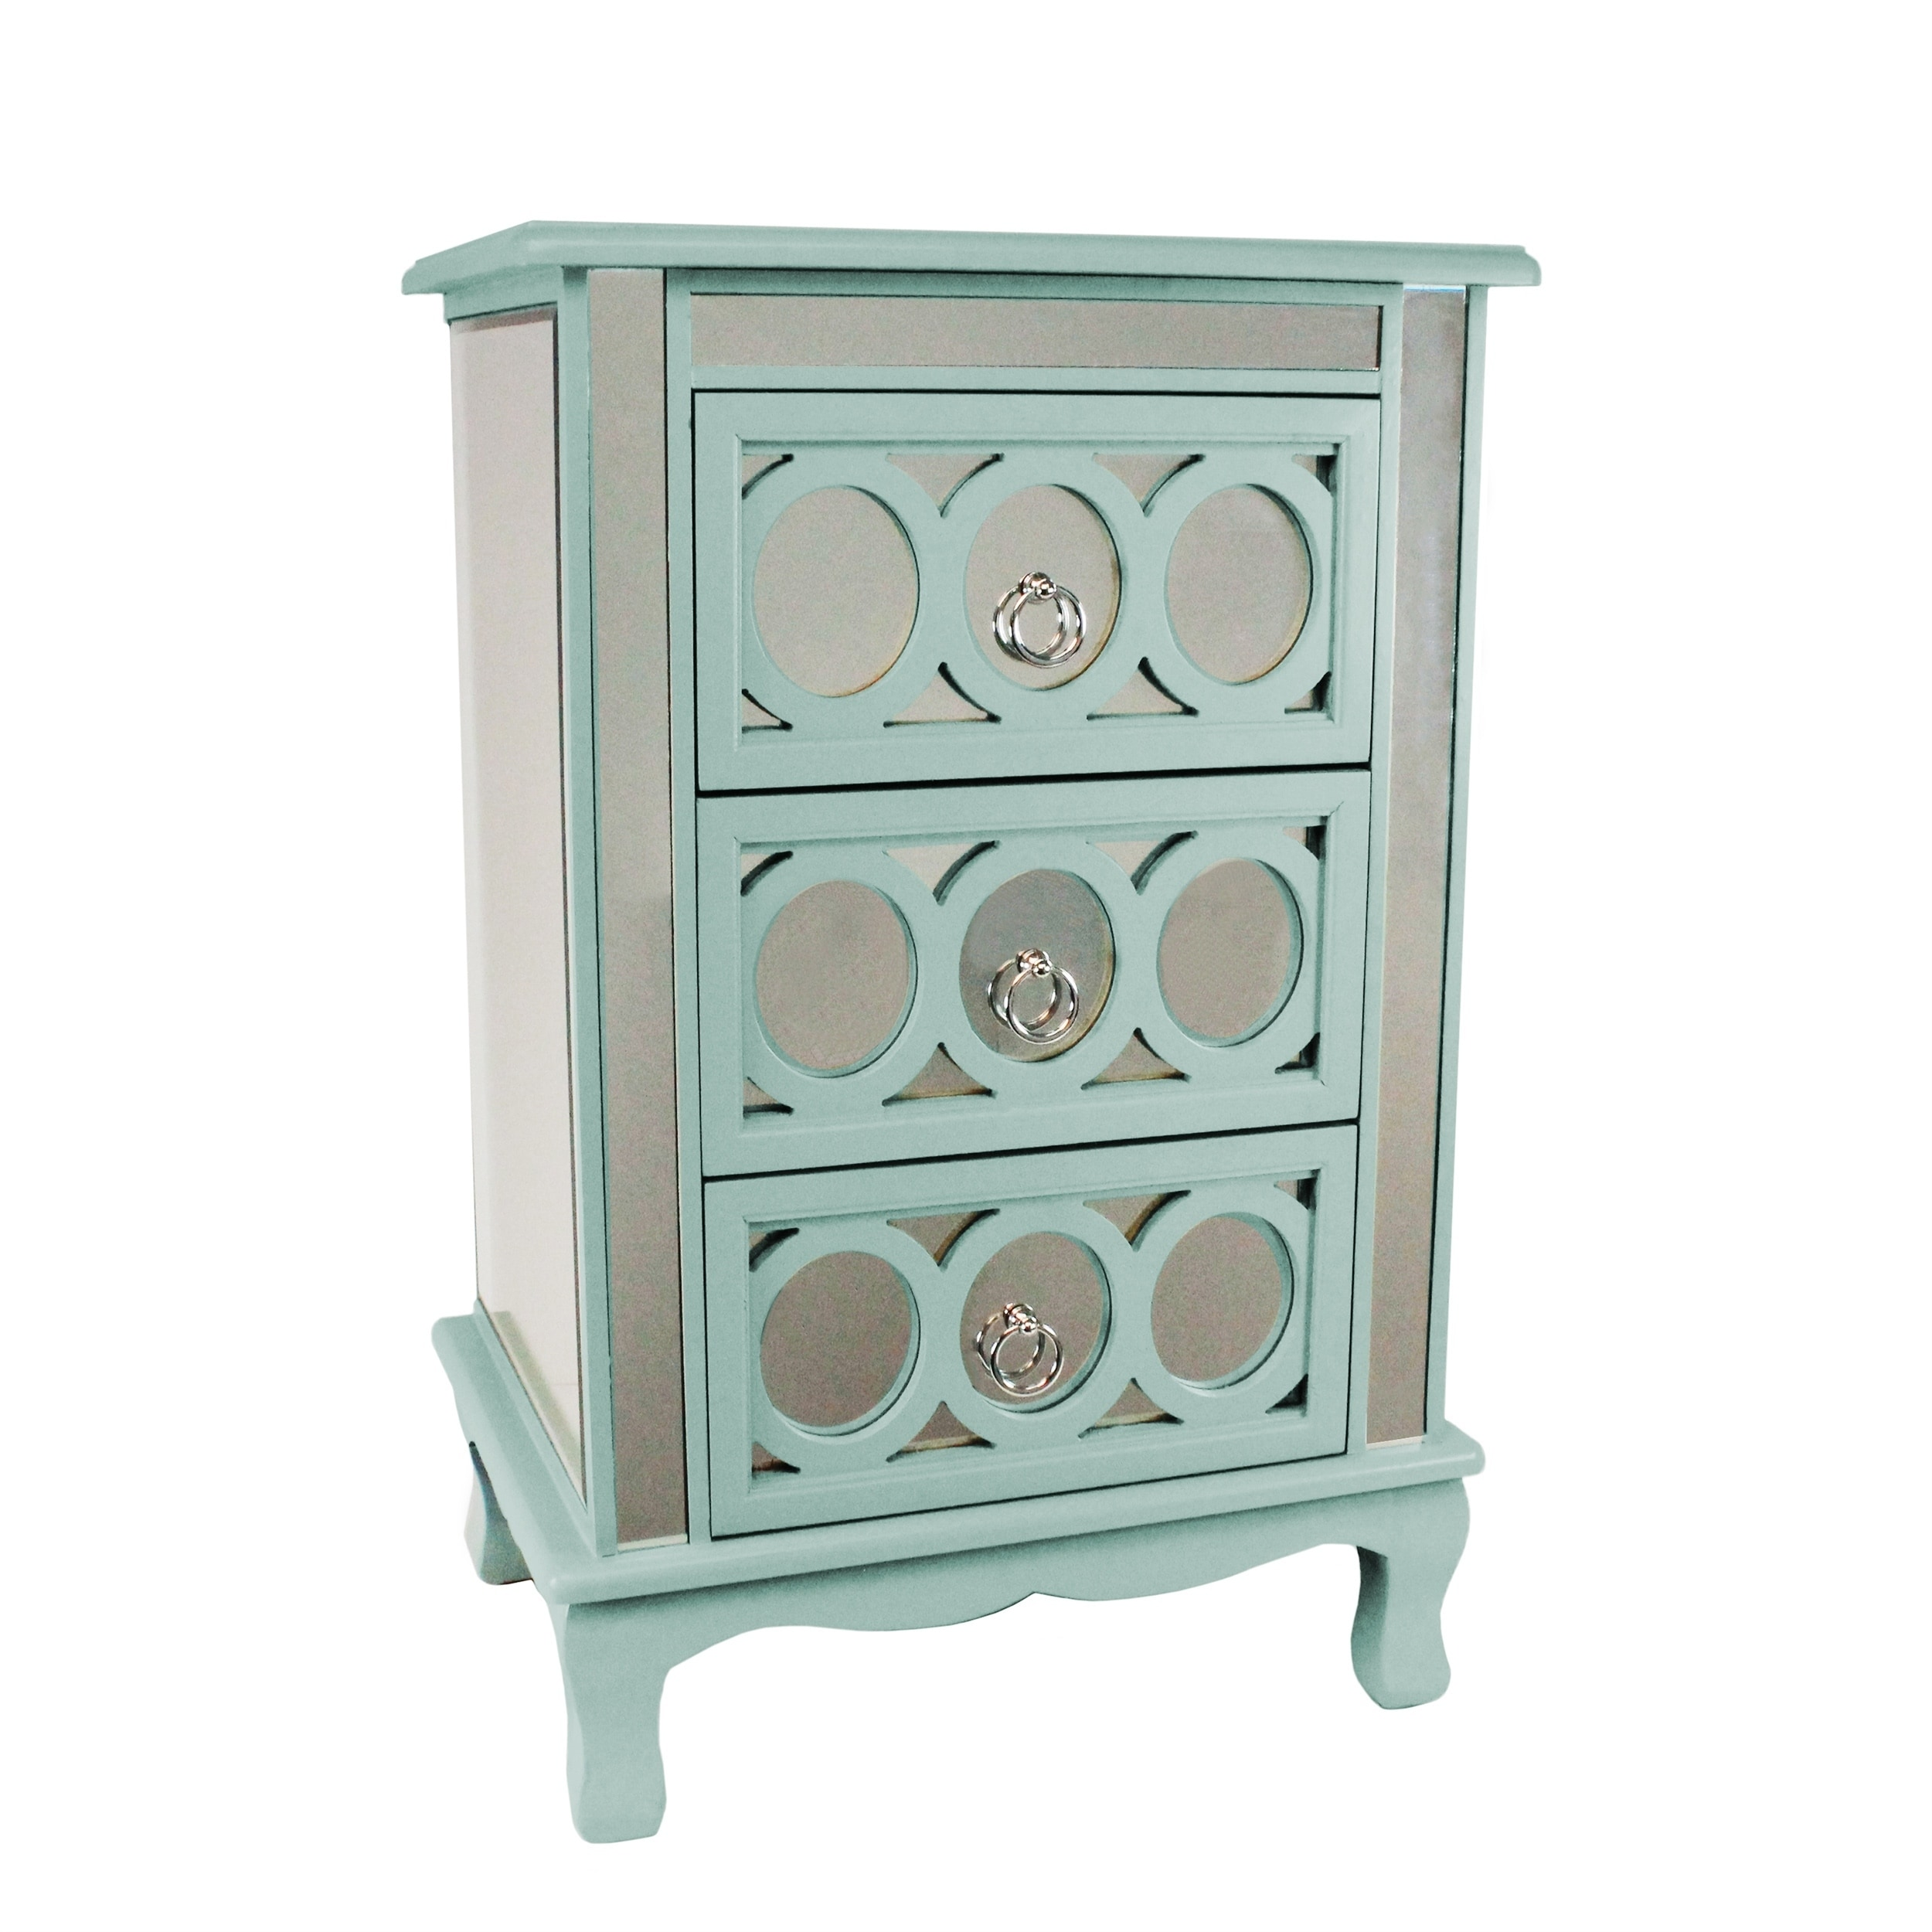 Urban Designs Gilmour Blue Wood Glass 3 Drawer Mirrored Nightstand Table